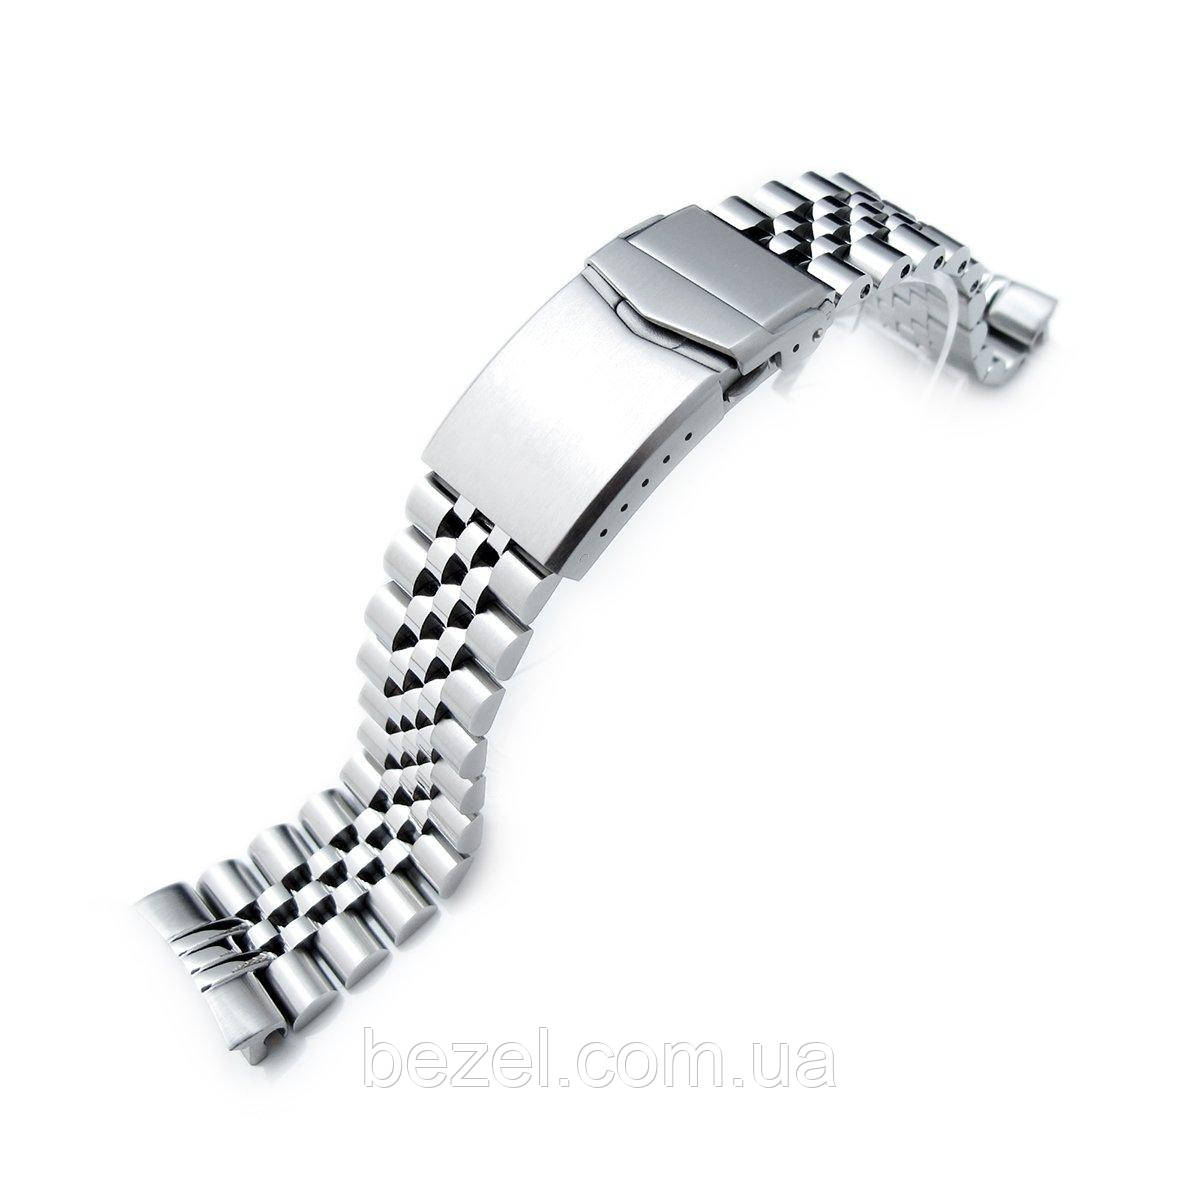 22mm Super Jubilee 316L Stainless Steel Watch Band for SEIKO Diver 6309-7040, V-Clasp Button Double Lock